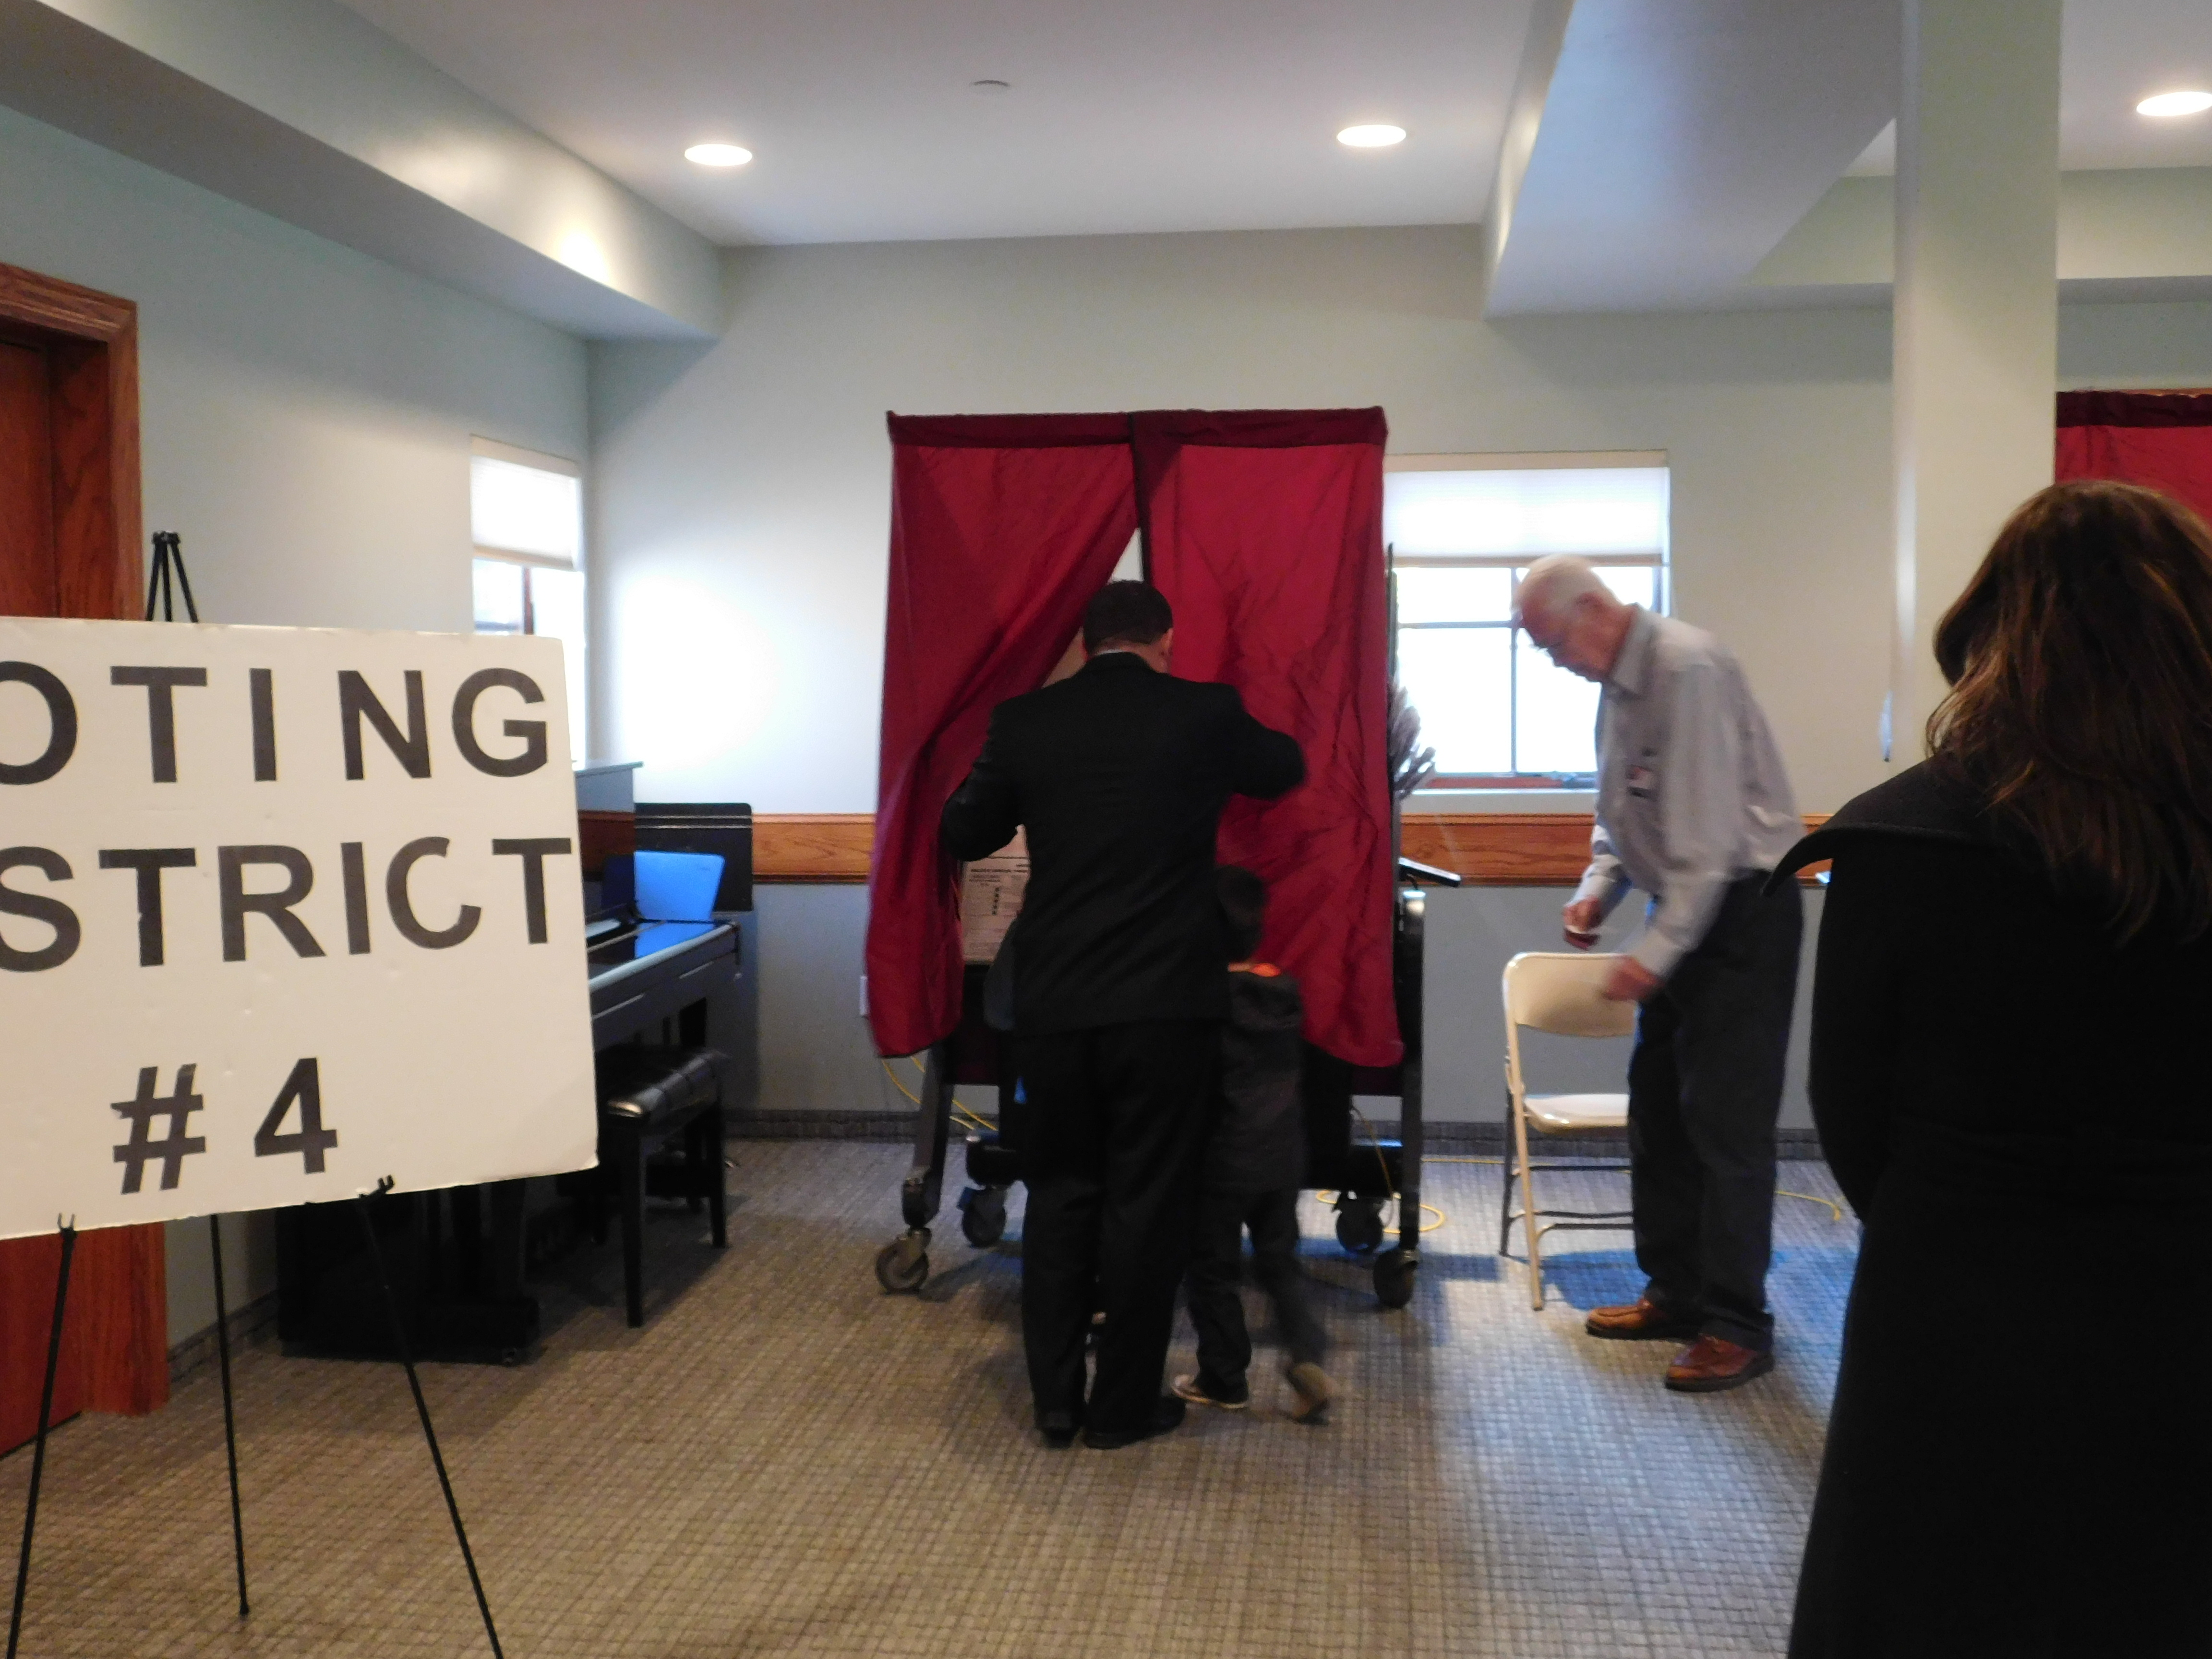 Gottheimer enters the voting booth with his children Ben and Ellie.